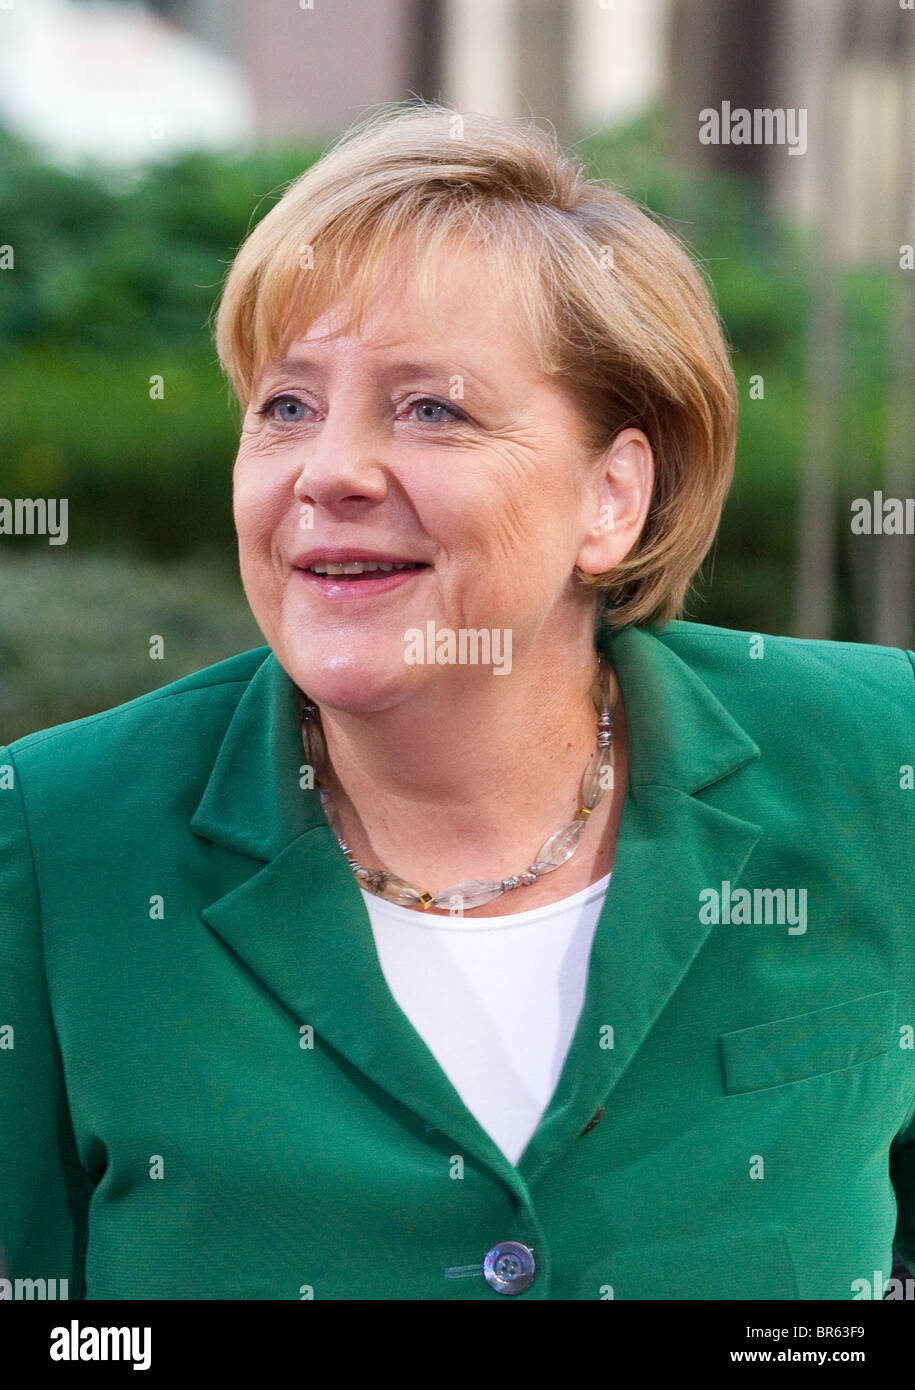 Angela merkel Photo Stock